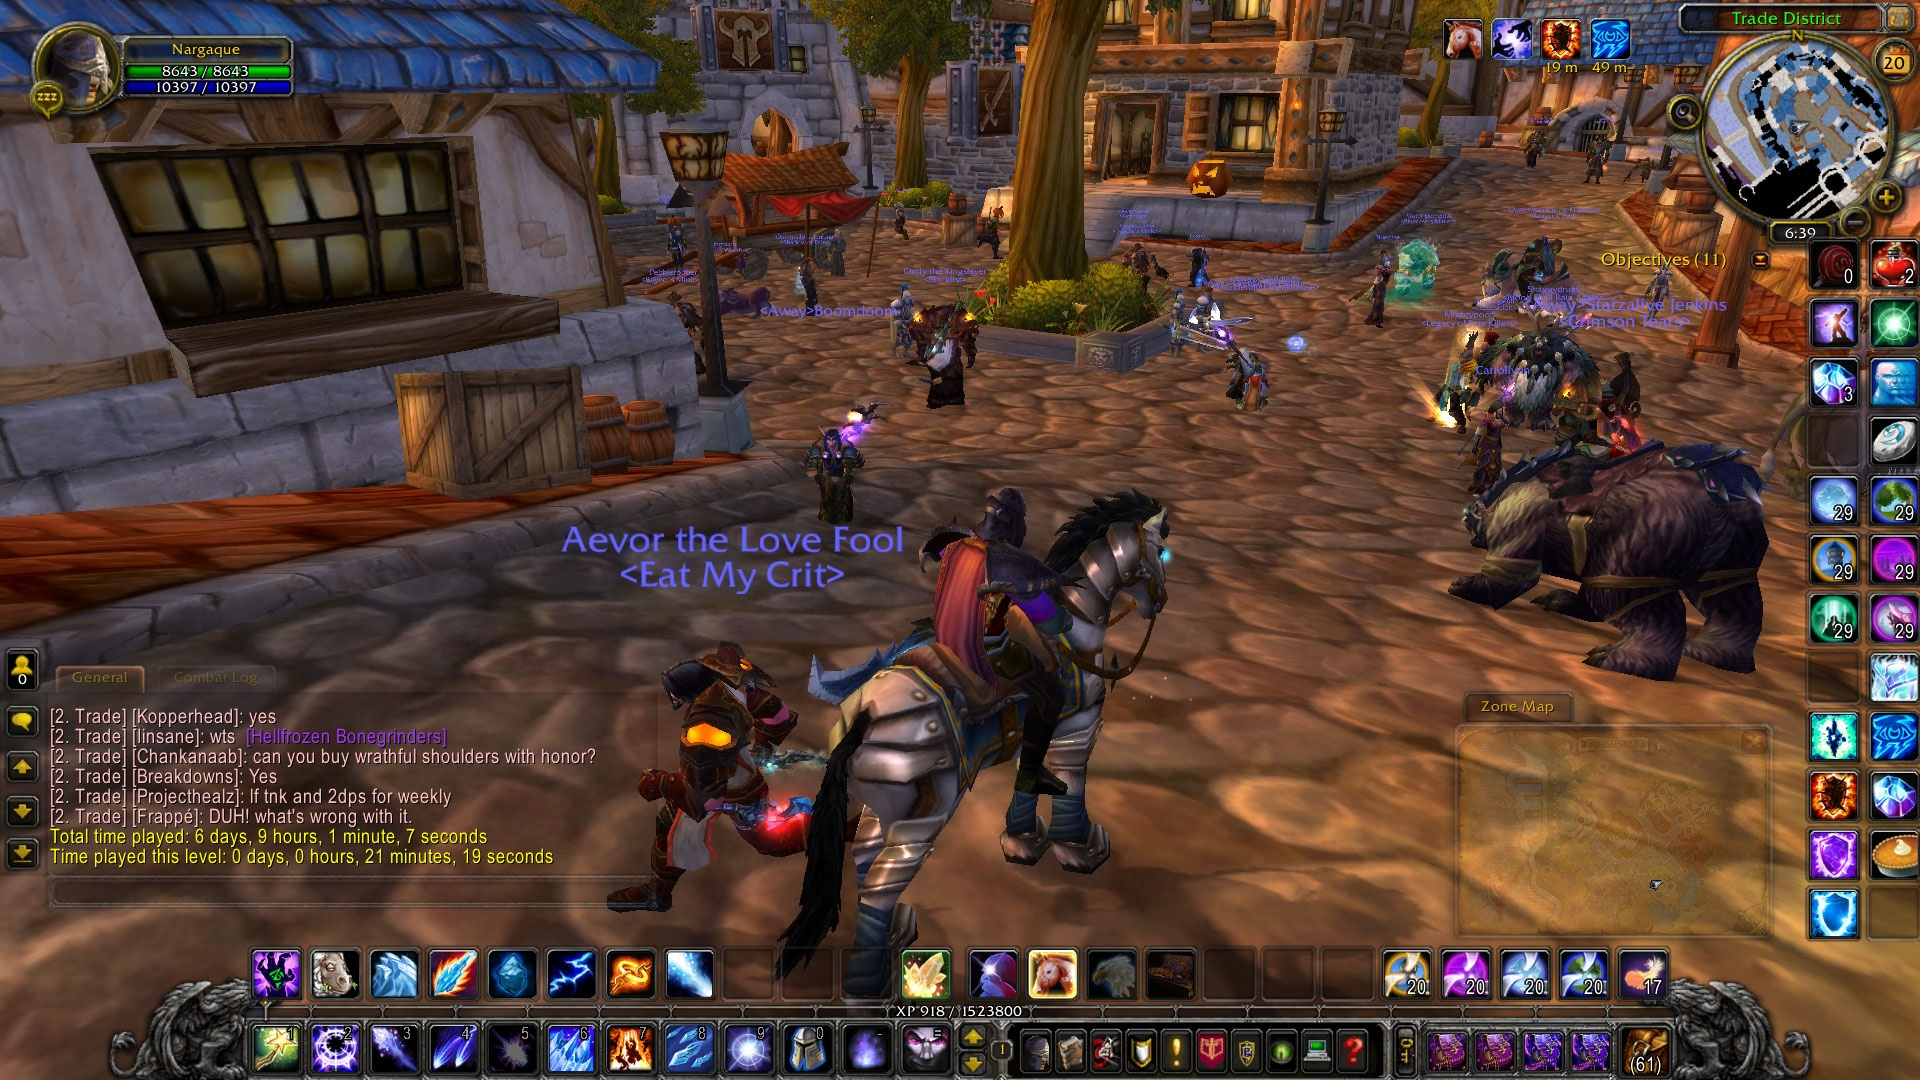 World Of Warcraft Juego De Mesa Les 18 Jeux Qui Font De Toi Un Vrai Gamer Welovebuzz